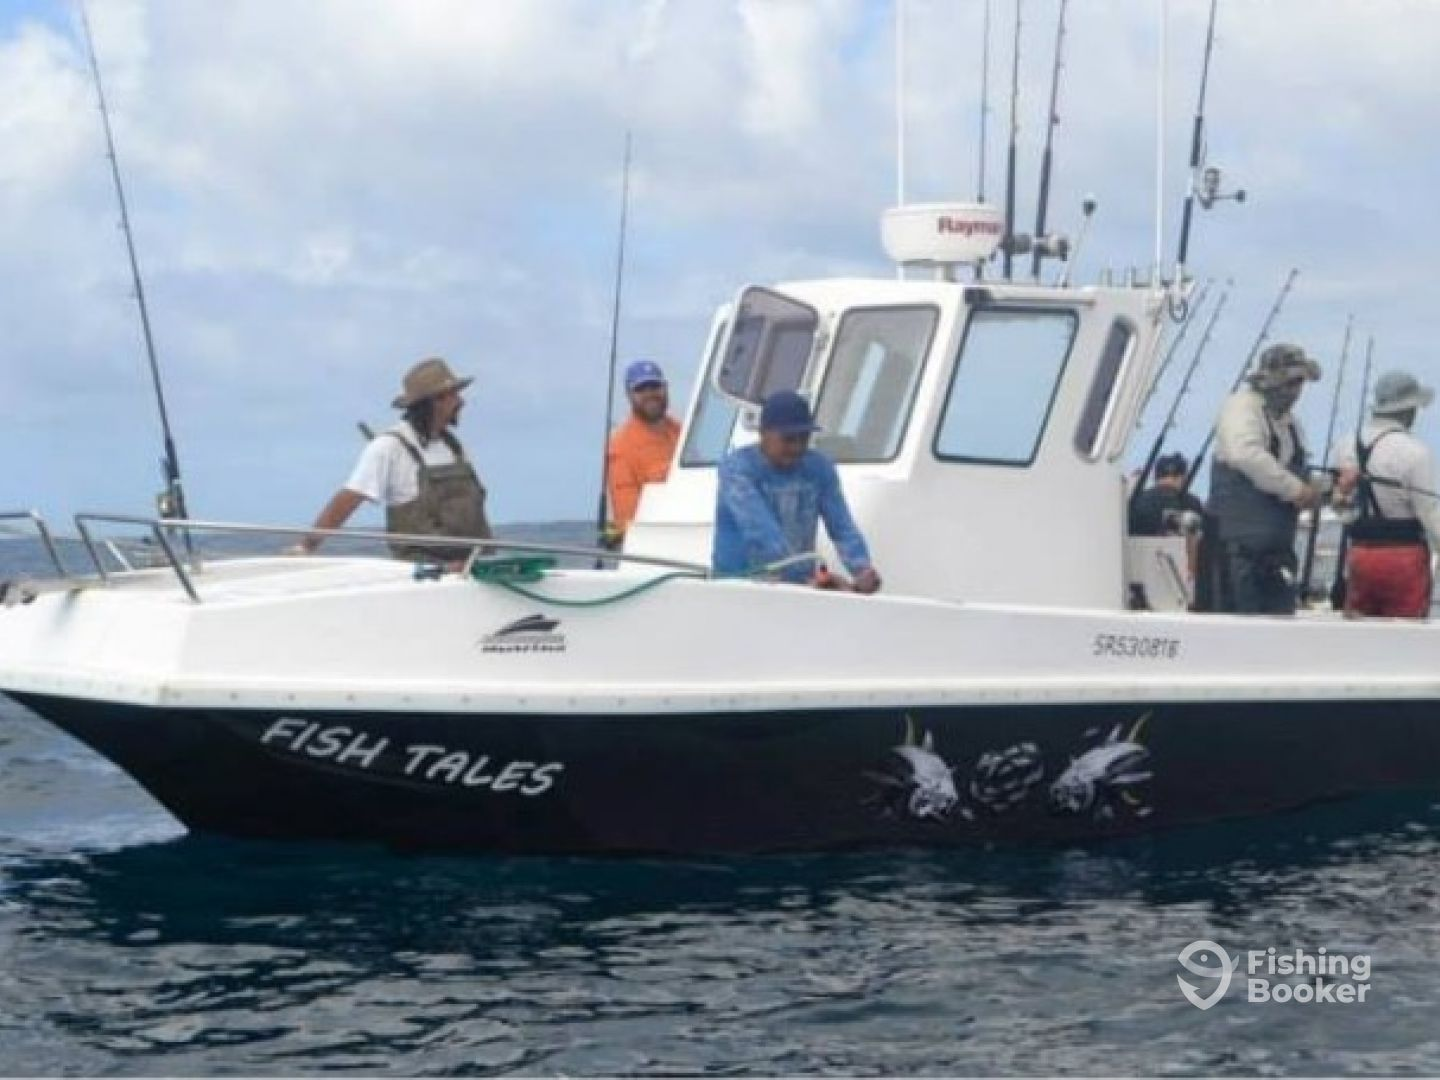 Fish tales fishing charters struisbaai south africa for Fish tales charters